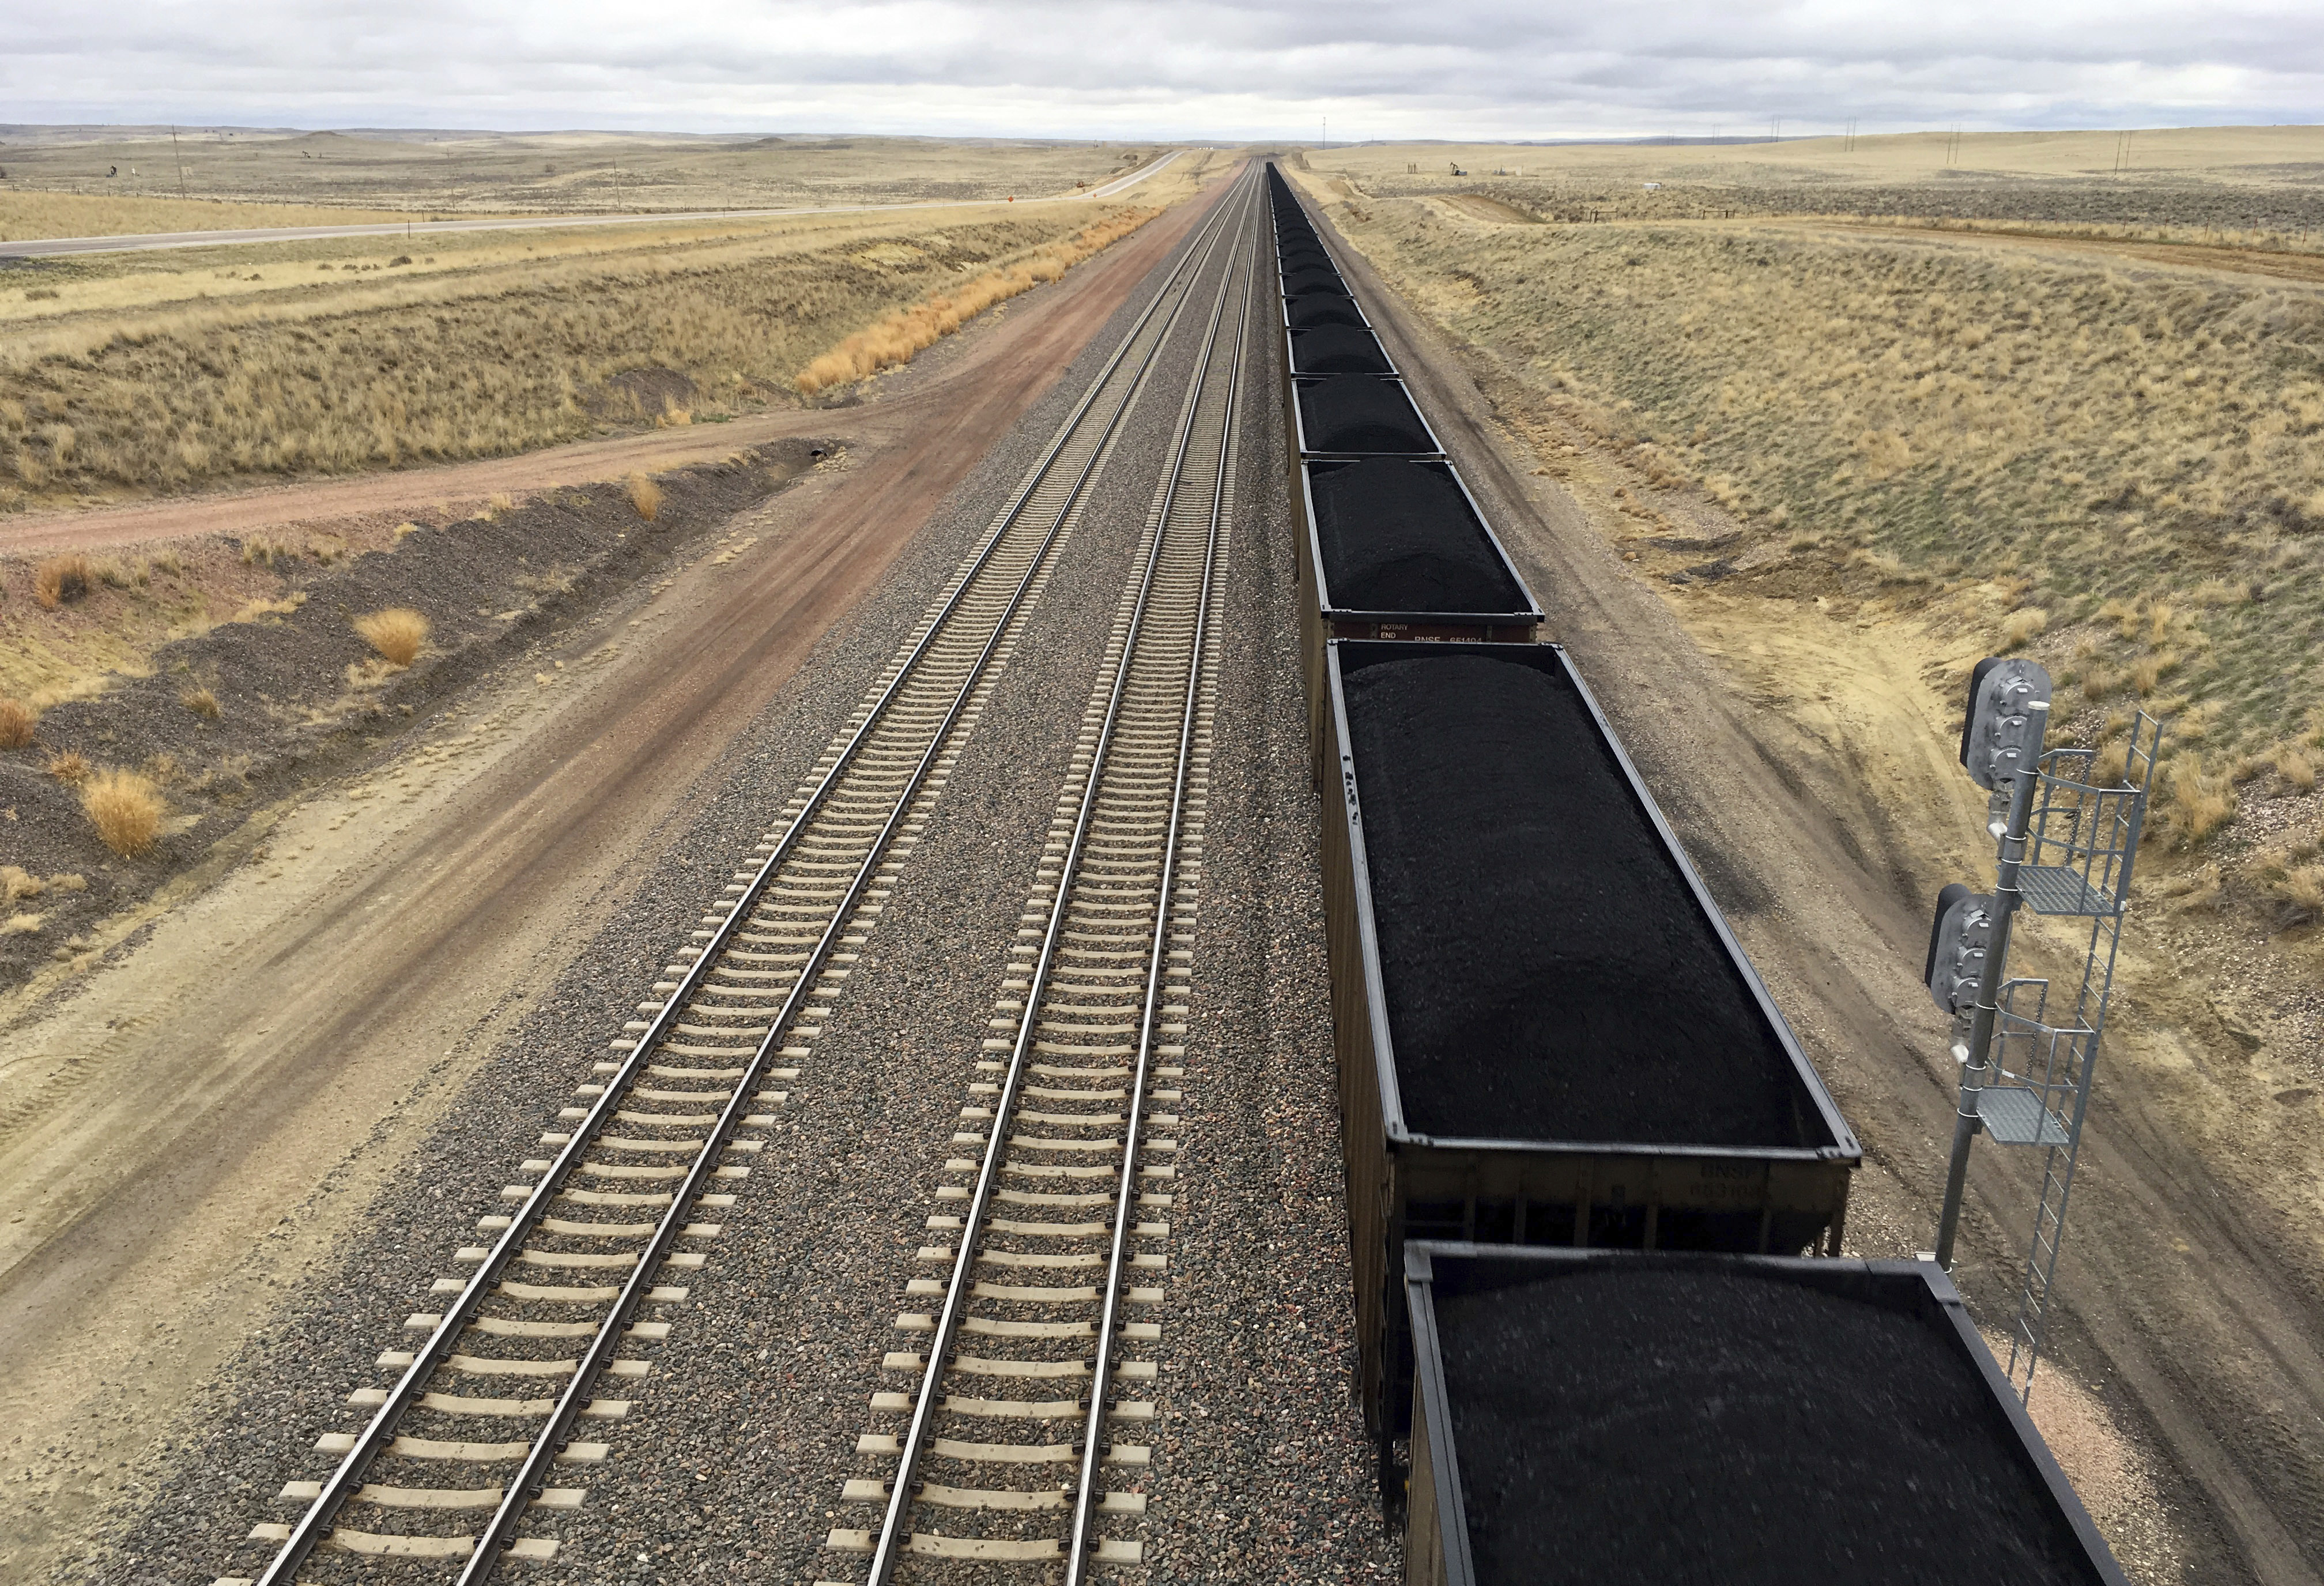 Trump Coal Royalties A train near hauls coal mined from Wyoming's Powder River Basin near Bill, Wyo. The Interior Department has scrapped an Obama-era rule aimed at ensuring that coal companies don't shortchange taxpayers on huge volumes of coal extracted from public lands, primarily in the West. (AP Photo/Mead Gruver, File)